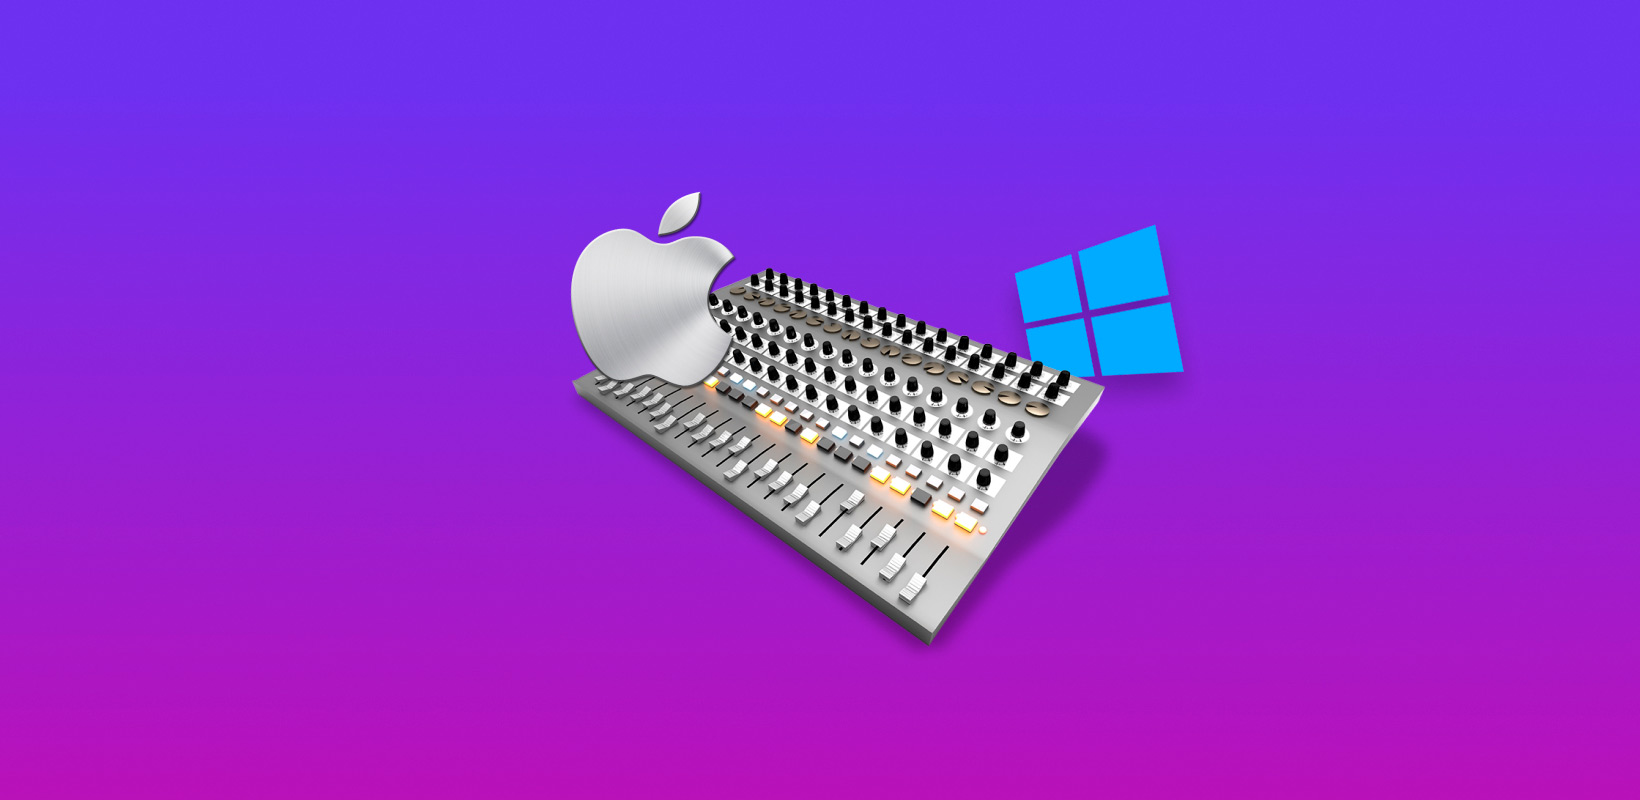 Mac Vs. Pc for Music Production: Functionality